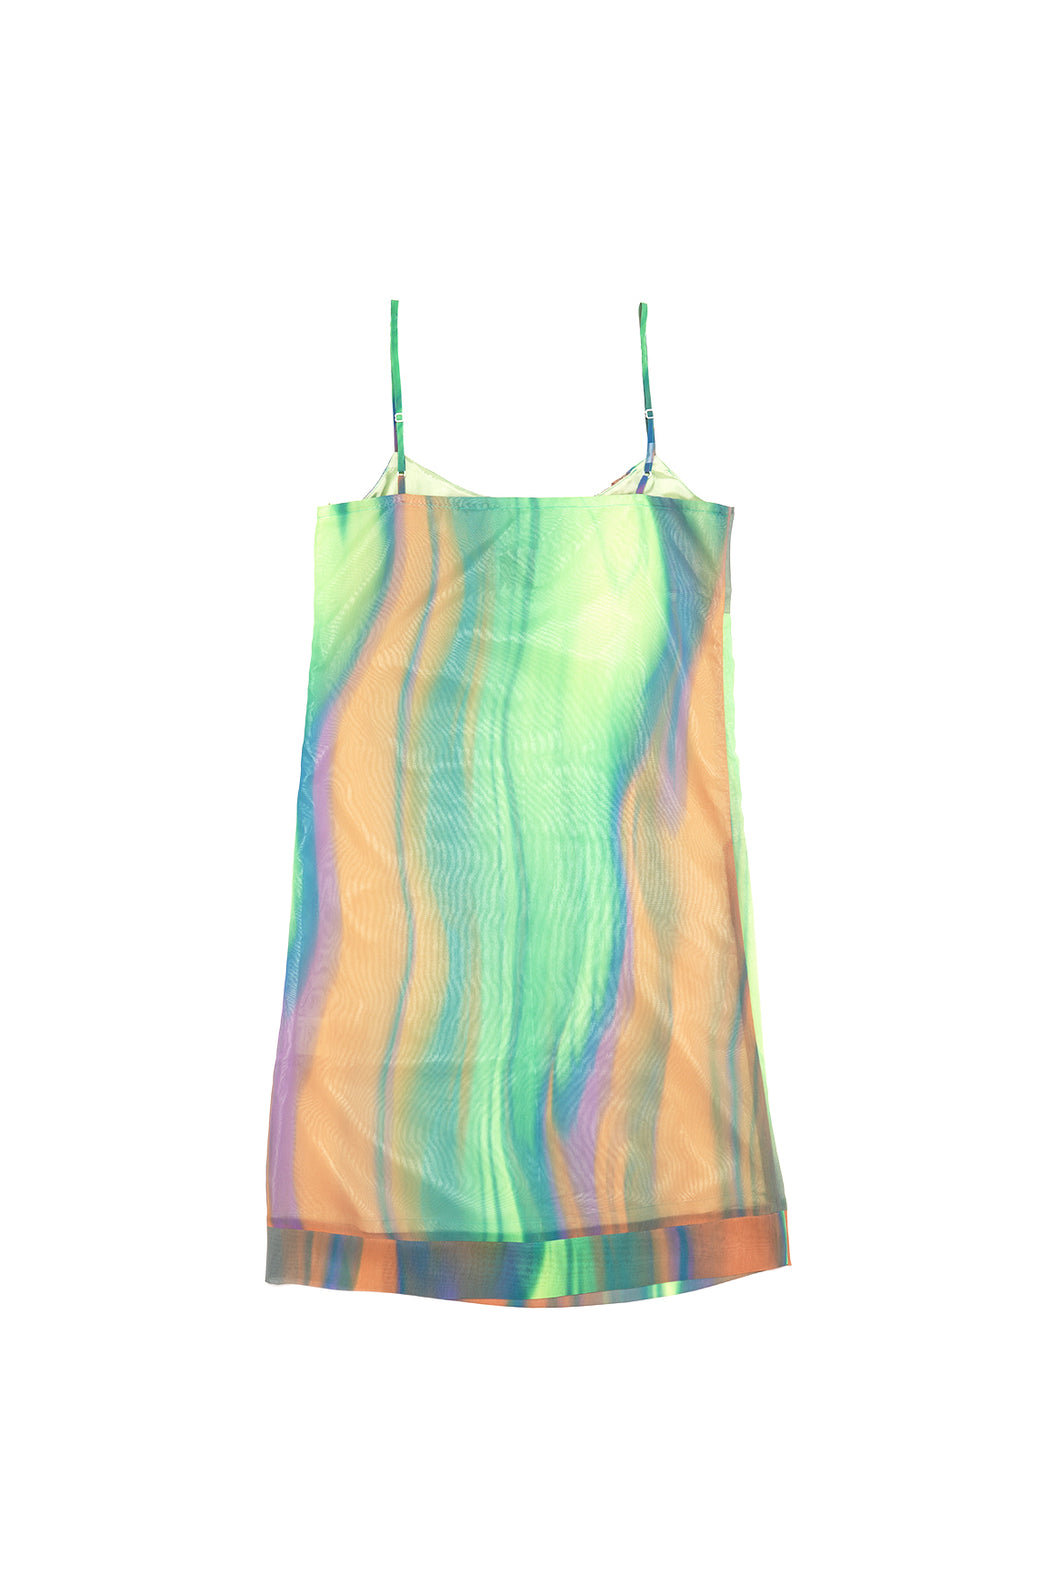 Watercolor Printed Dress - Green